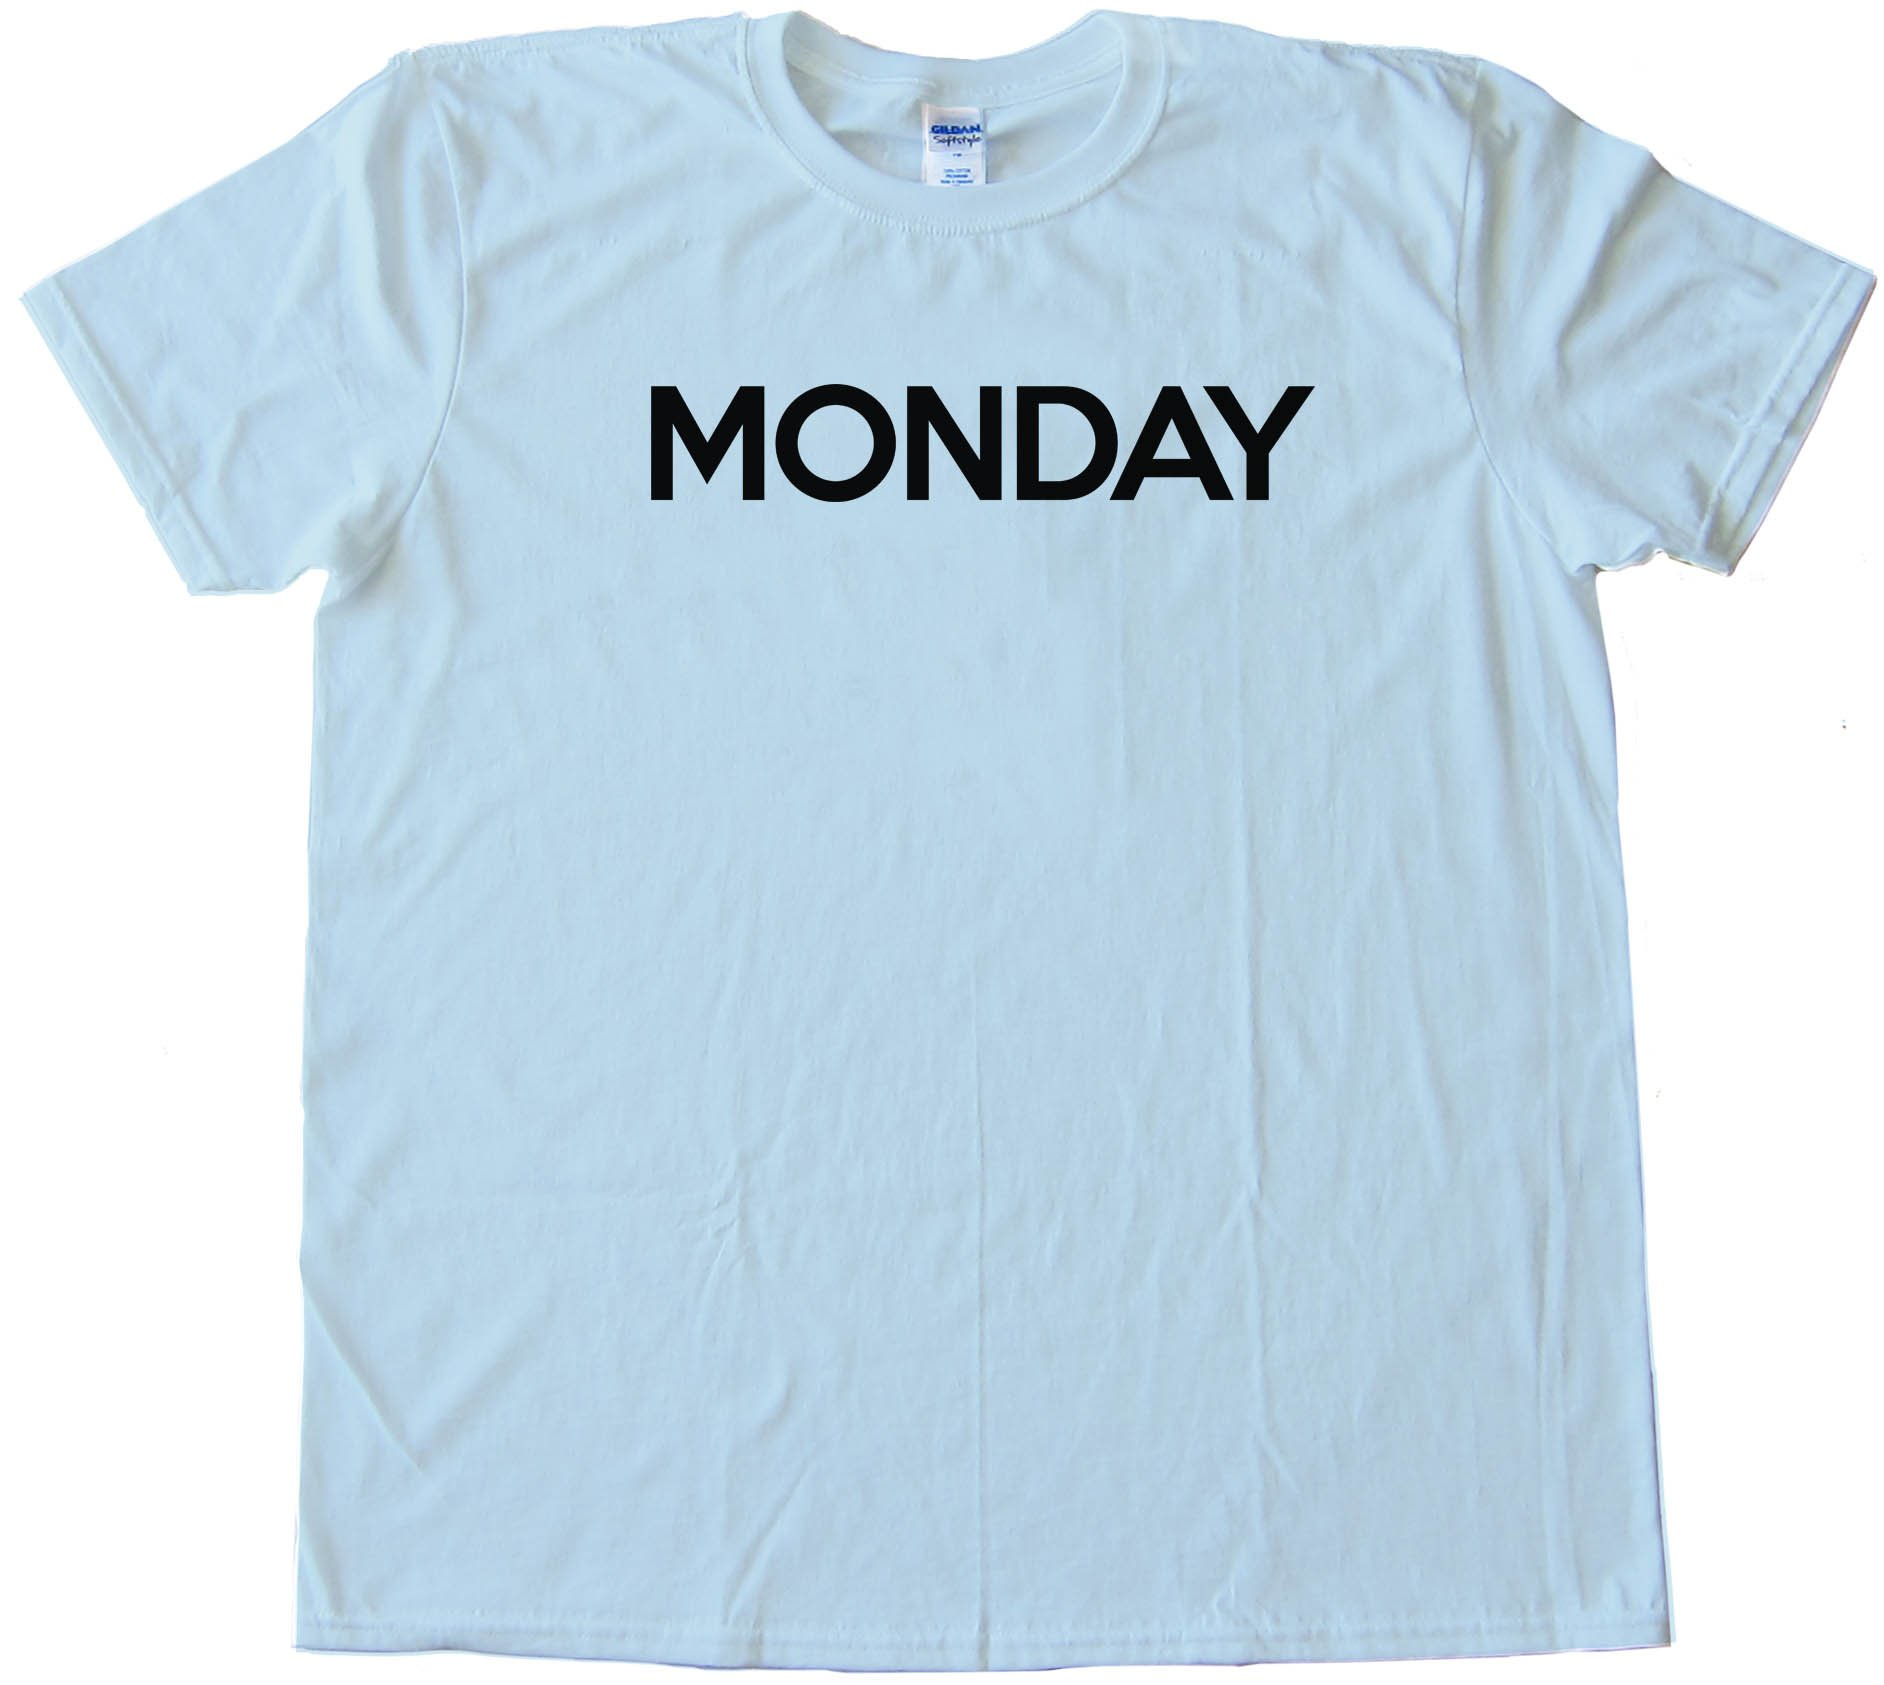 Monday - Days Of The Week - Tee Shirt